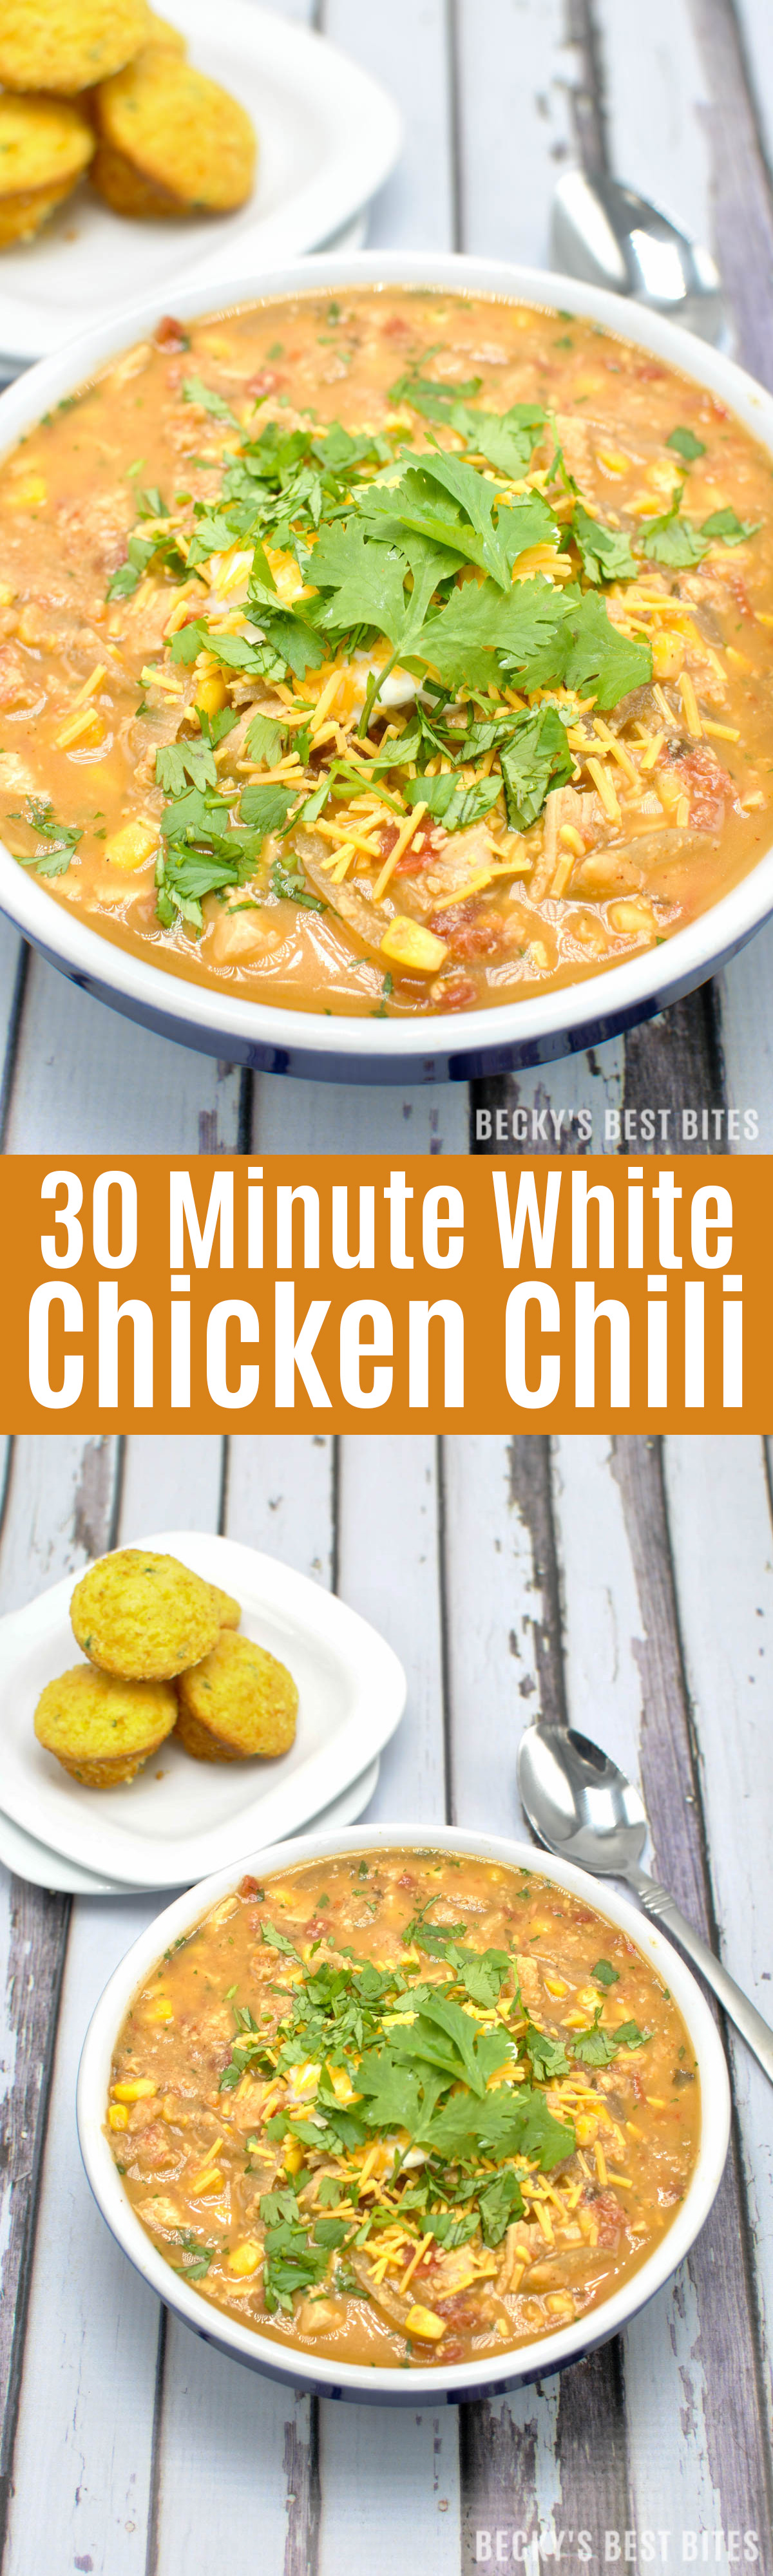 30 minute white chicken chili becky u0027s best bites